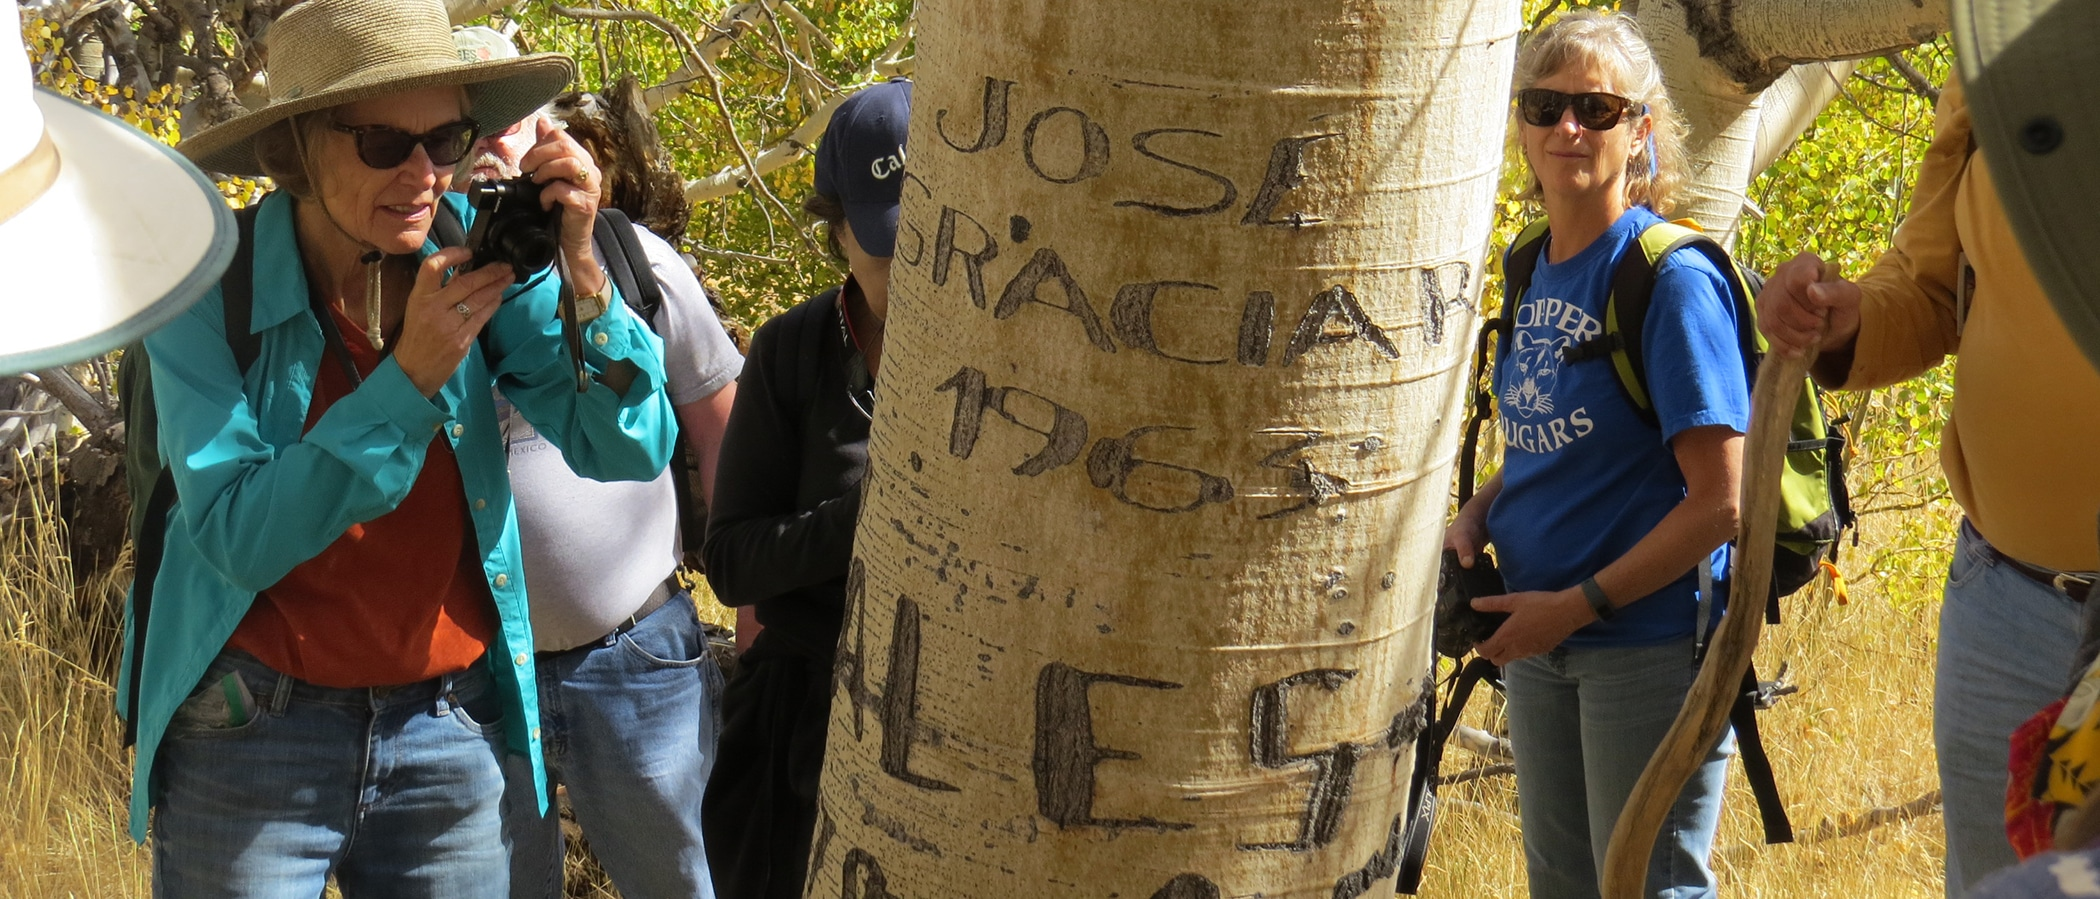 People gather around a tree with names carved into it, and one woman takes a picture.